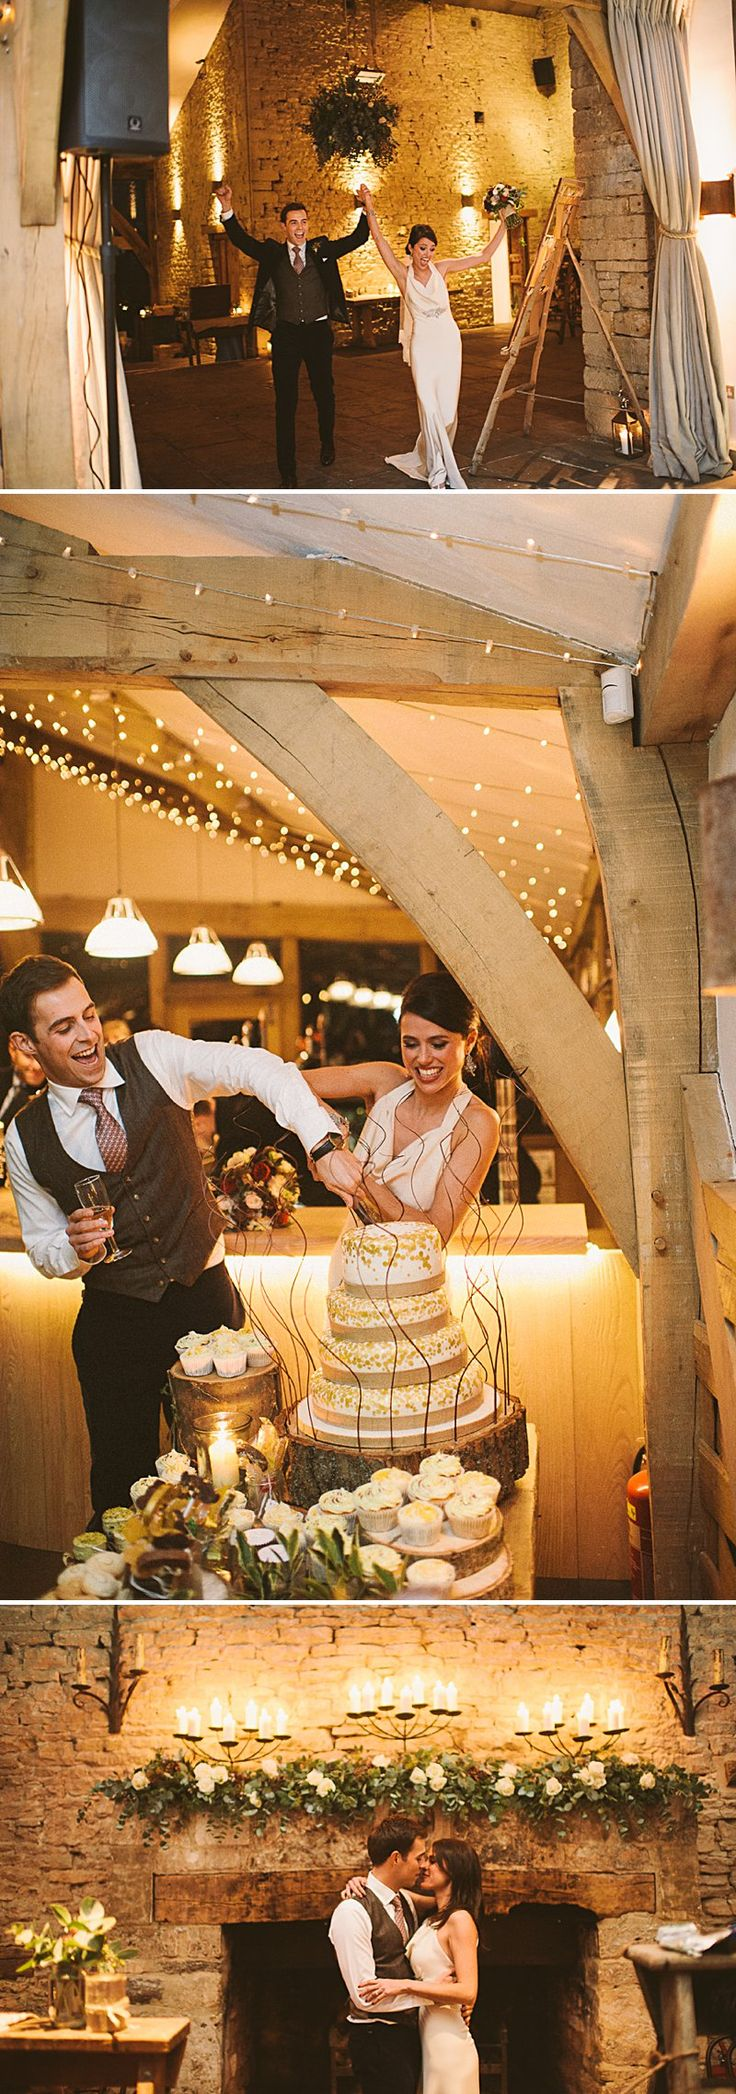 A rustic winter wedding at Cripps Barn with DIY home made decor and Halfpenny London bridal gown blue maids dresses and photography by Ellie Gilliard 0013 A Rustic Winter Wedding At Cripps Barn